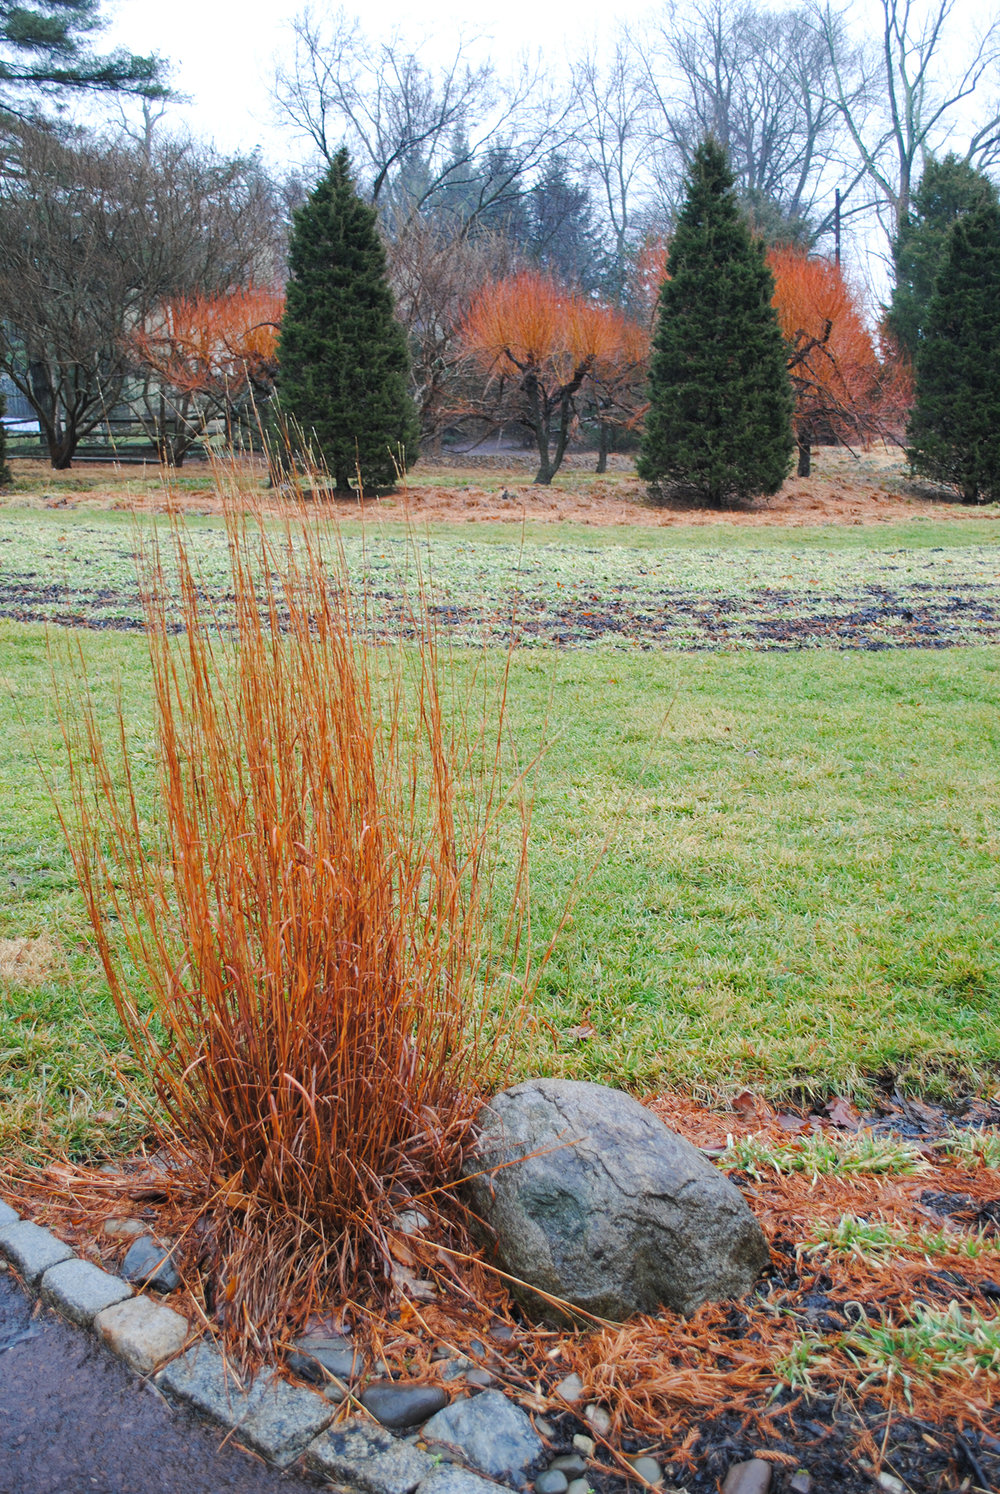 A lone  Schizachryium  echoes the color of the blazing branches of  Salix alba  'Britzensis' in the background.